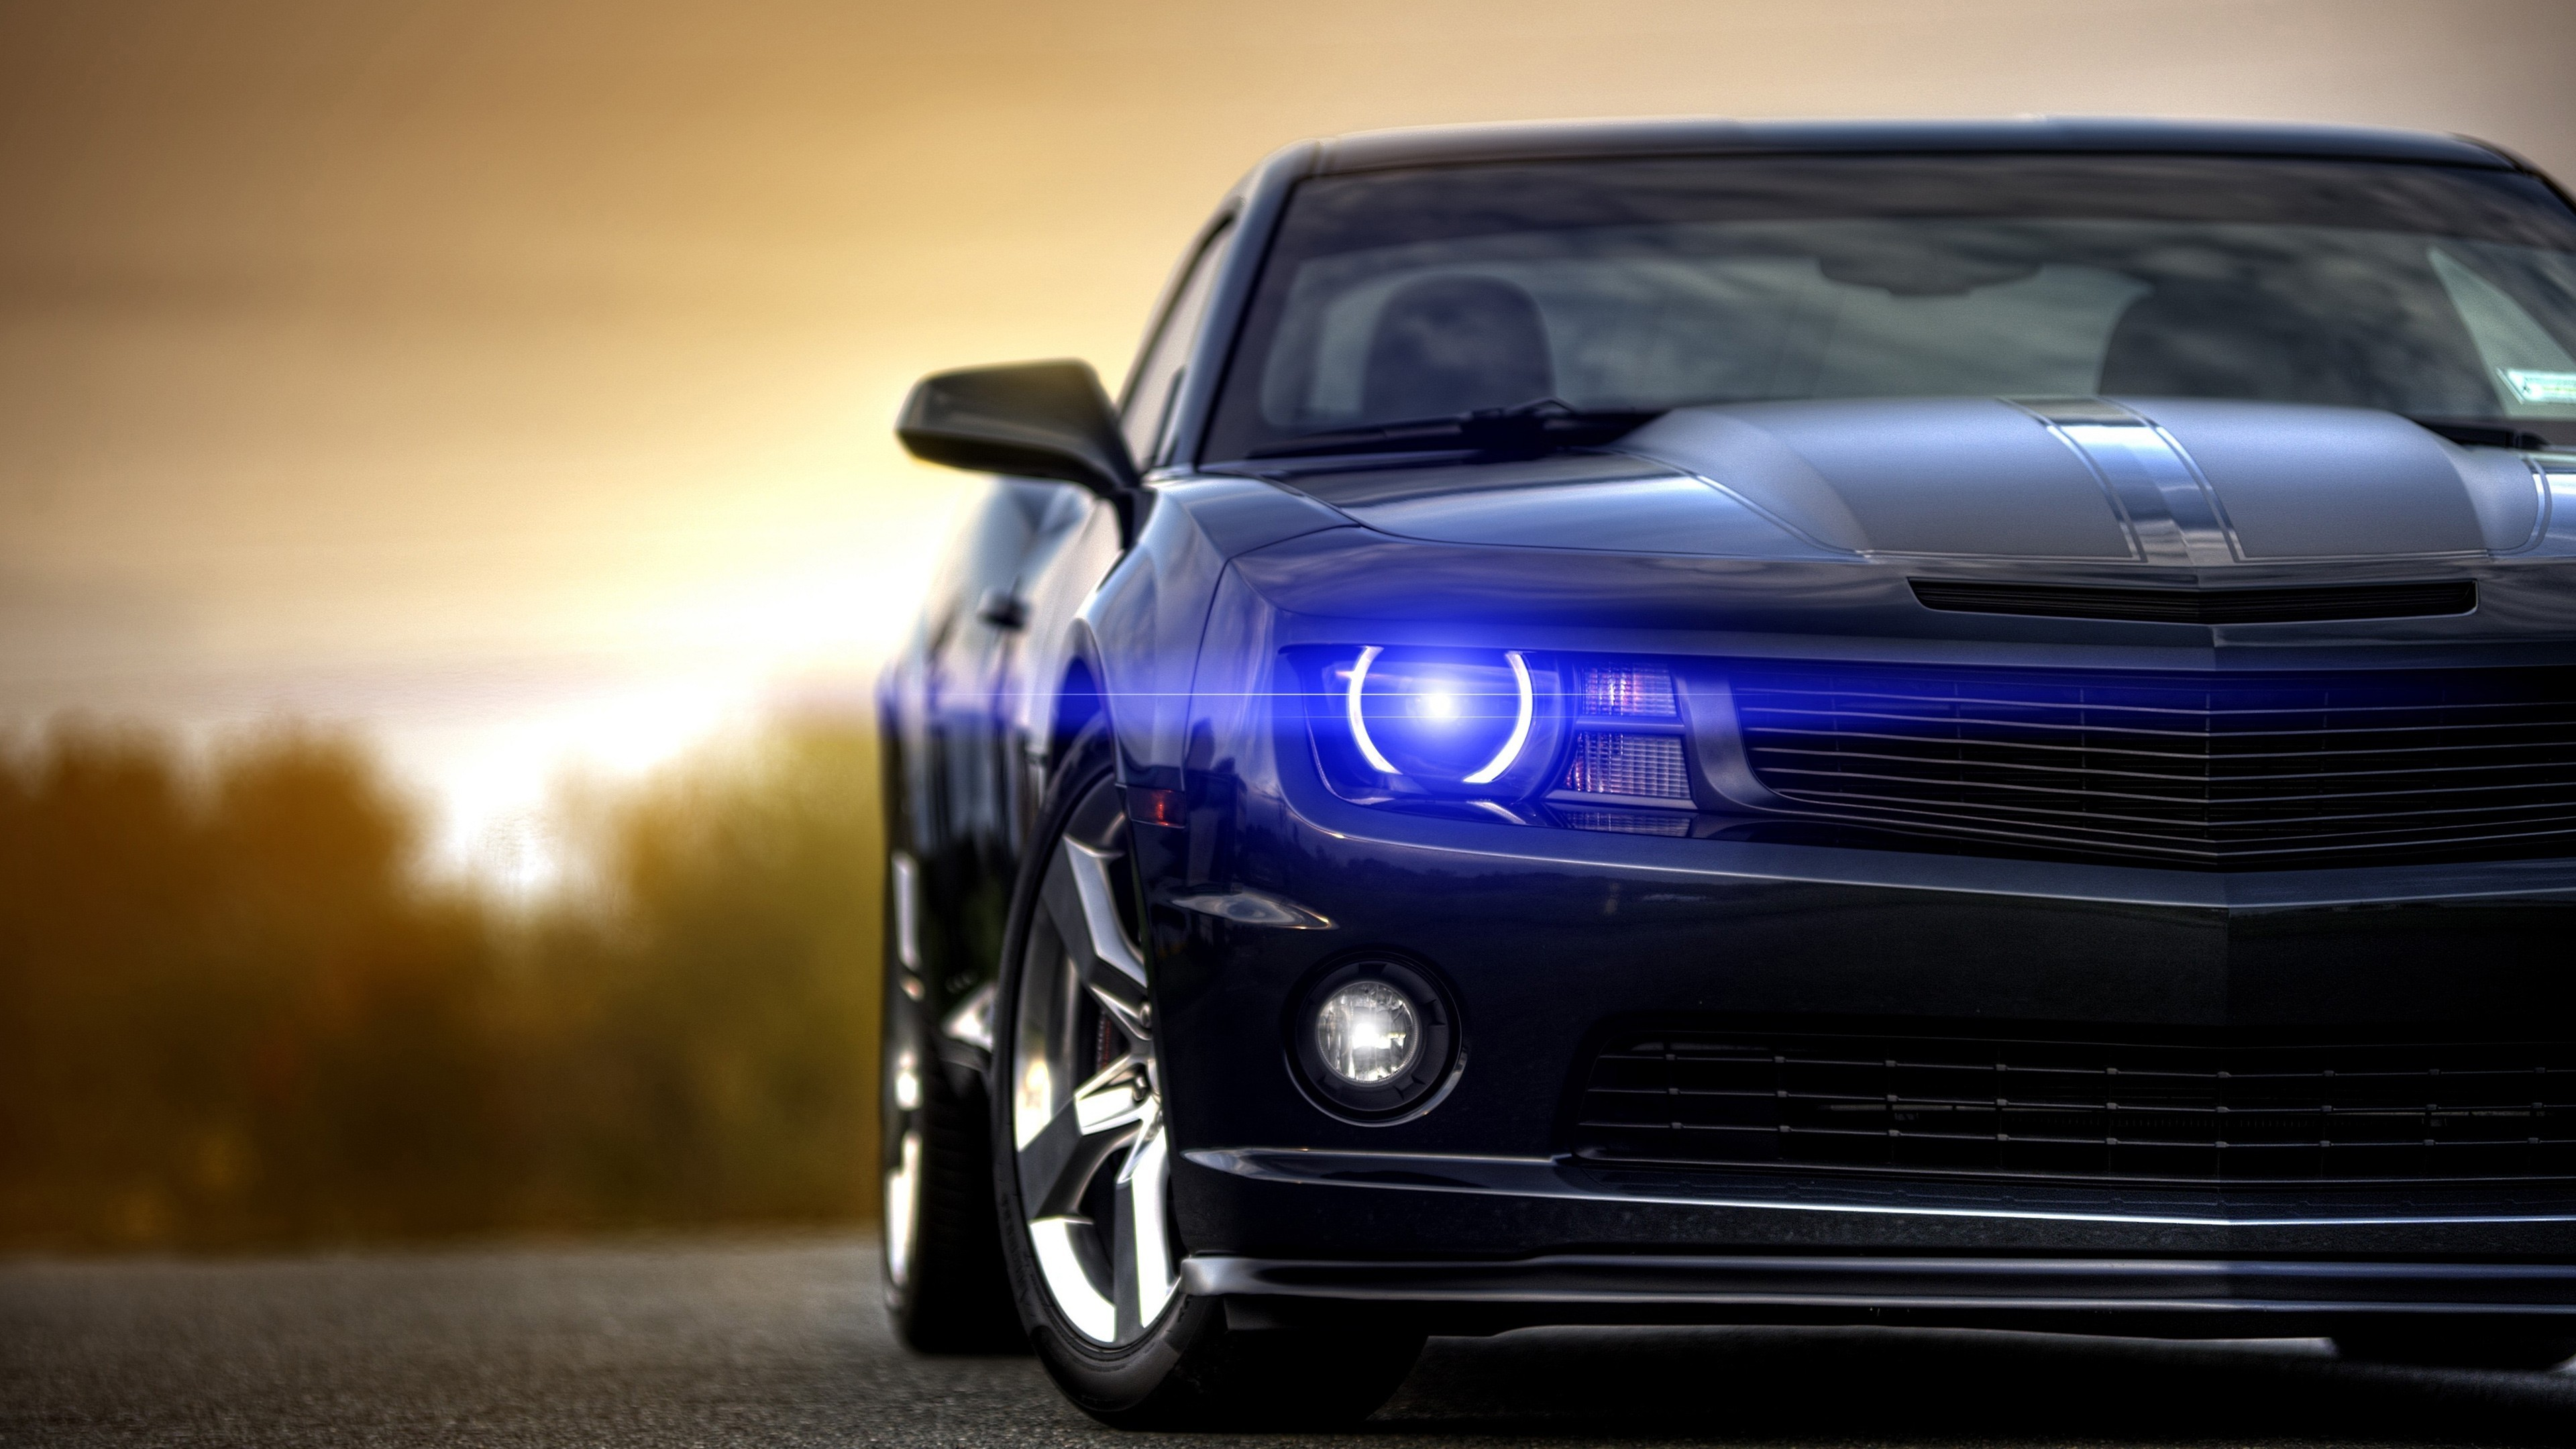 Cars Wallpapers: Muscle Cars Wallpapers (70+ Images